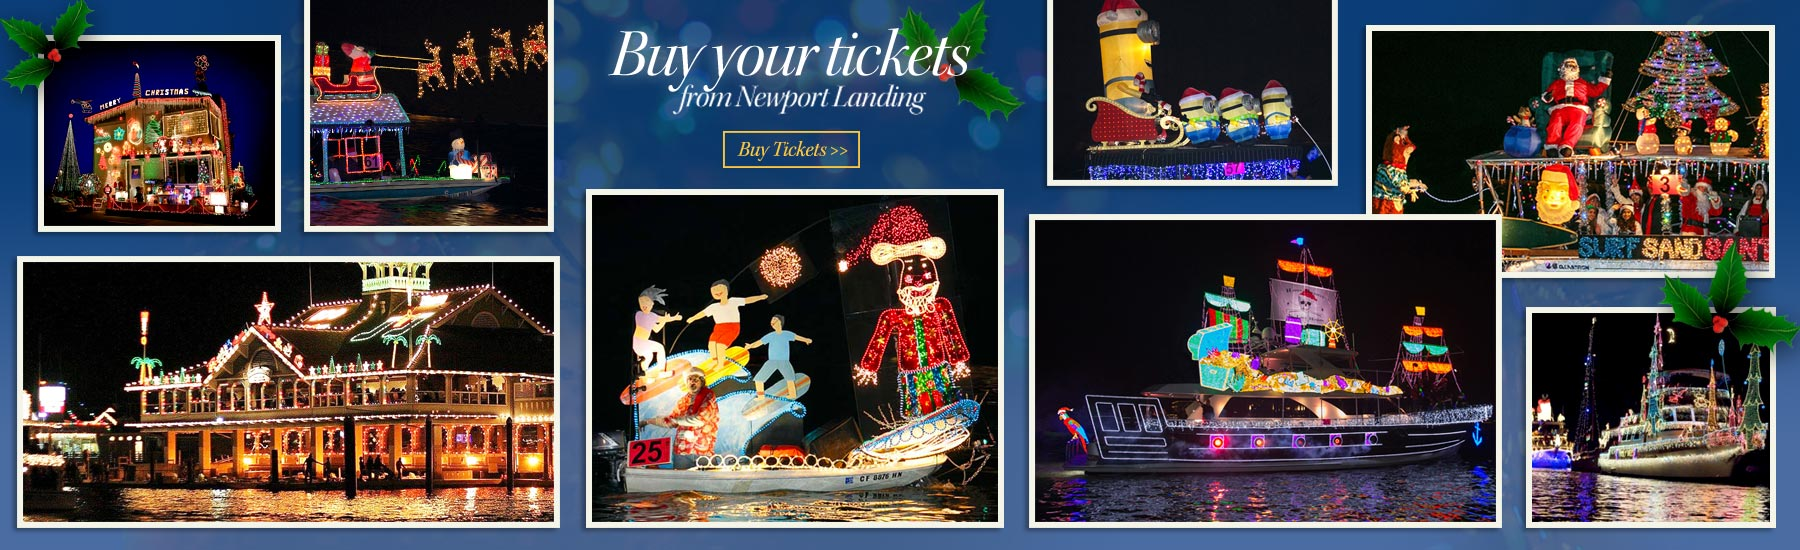 Newport Beach Christmas Boat Parade - Reservation Request Form on buyers saltdogg, buyers products, agreement form, buyers and sellers, buyers journey, buyer information form, buyers spreaders,